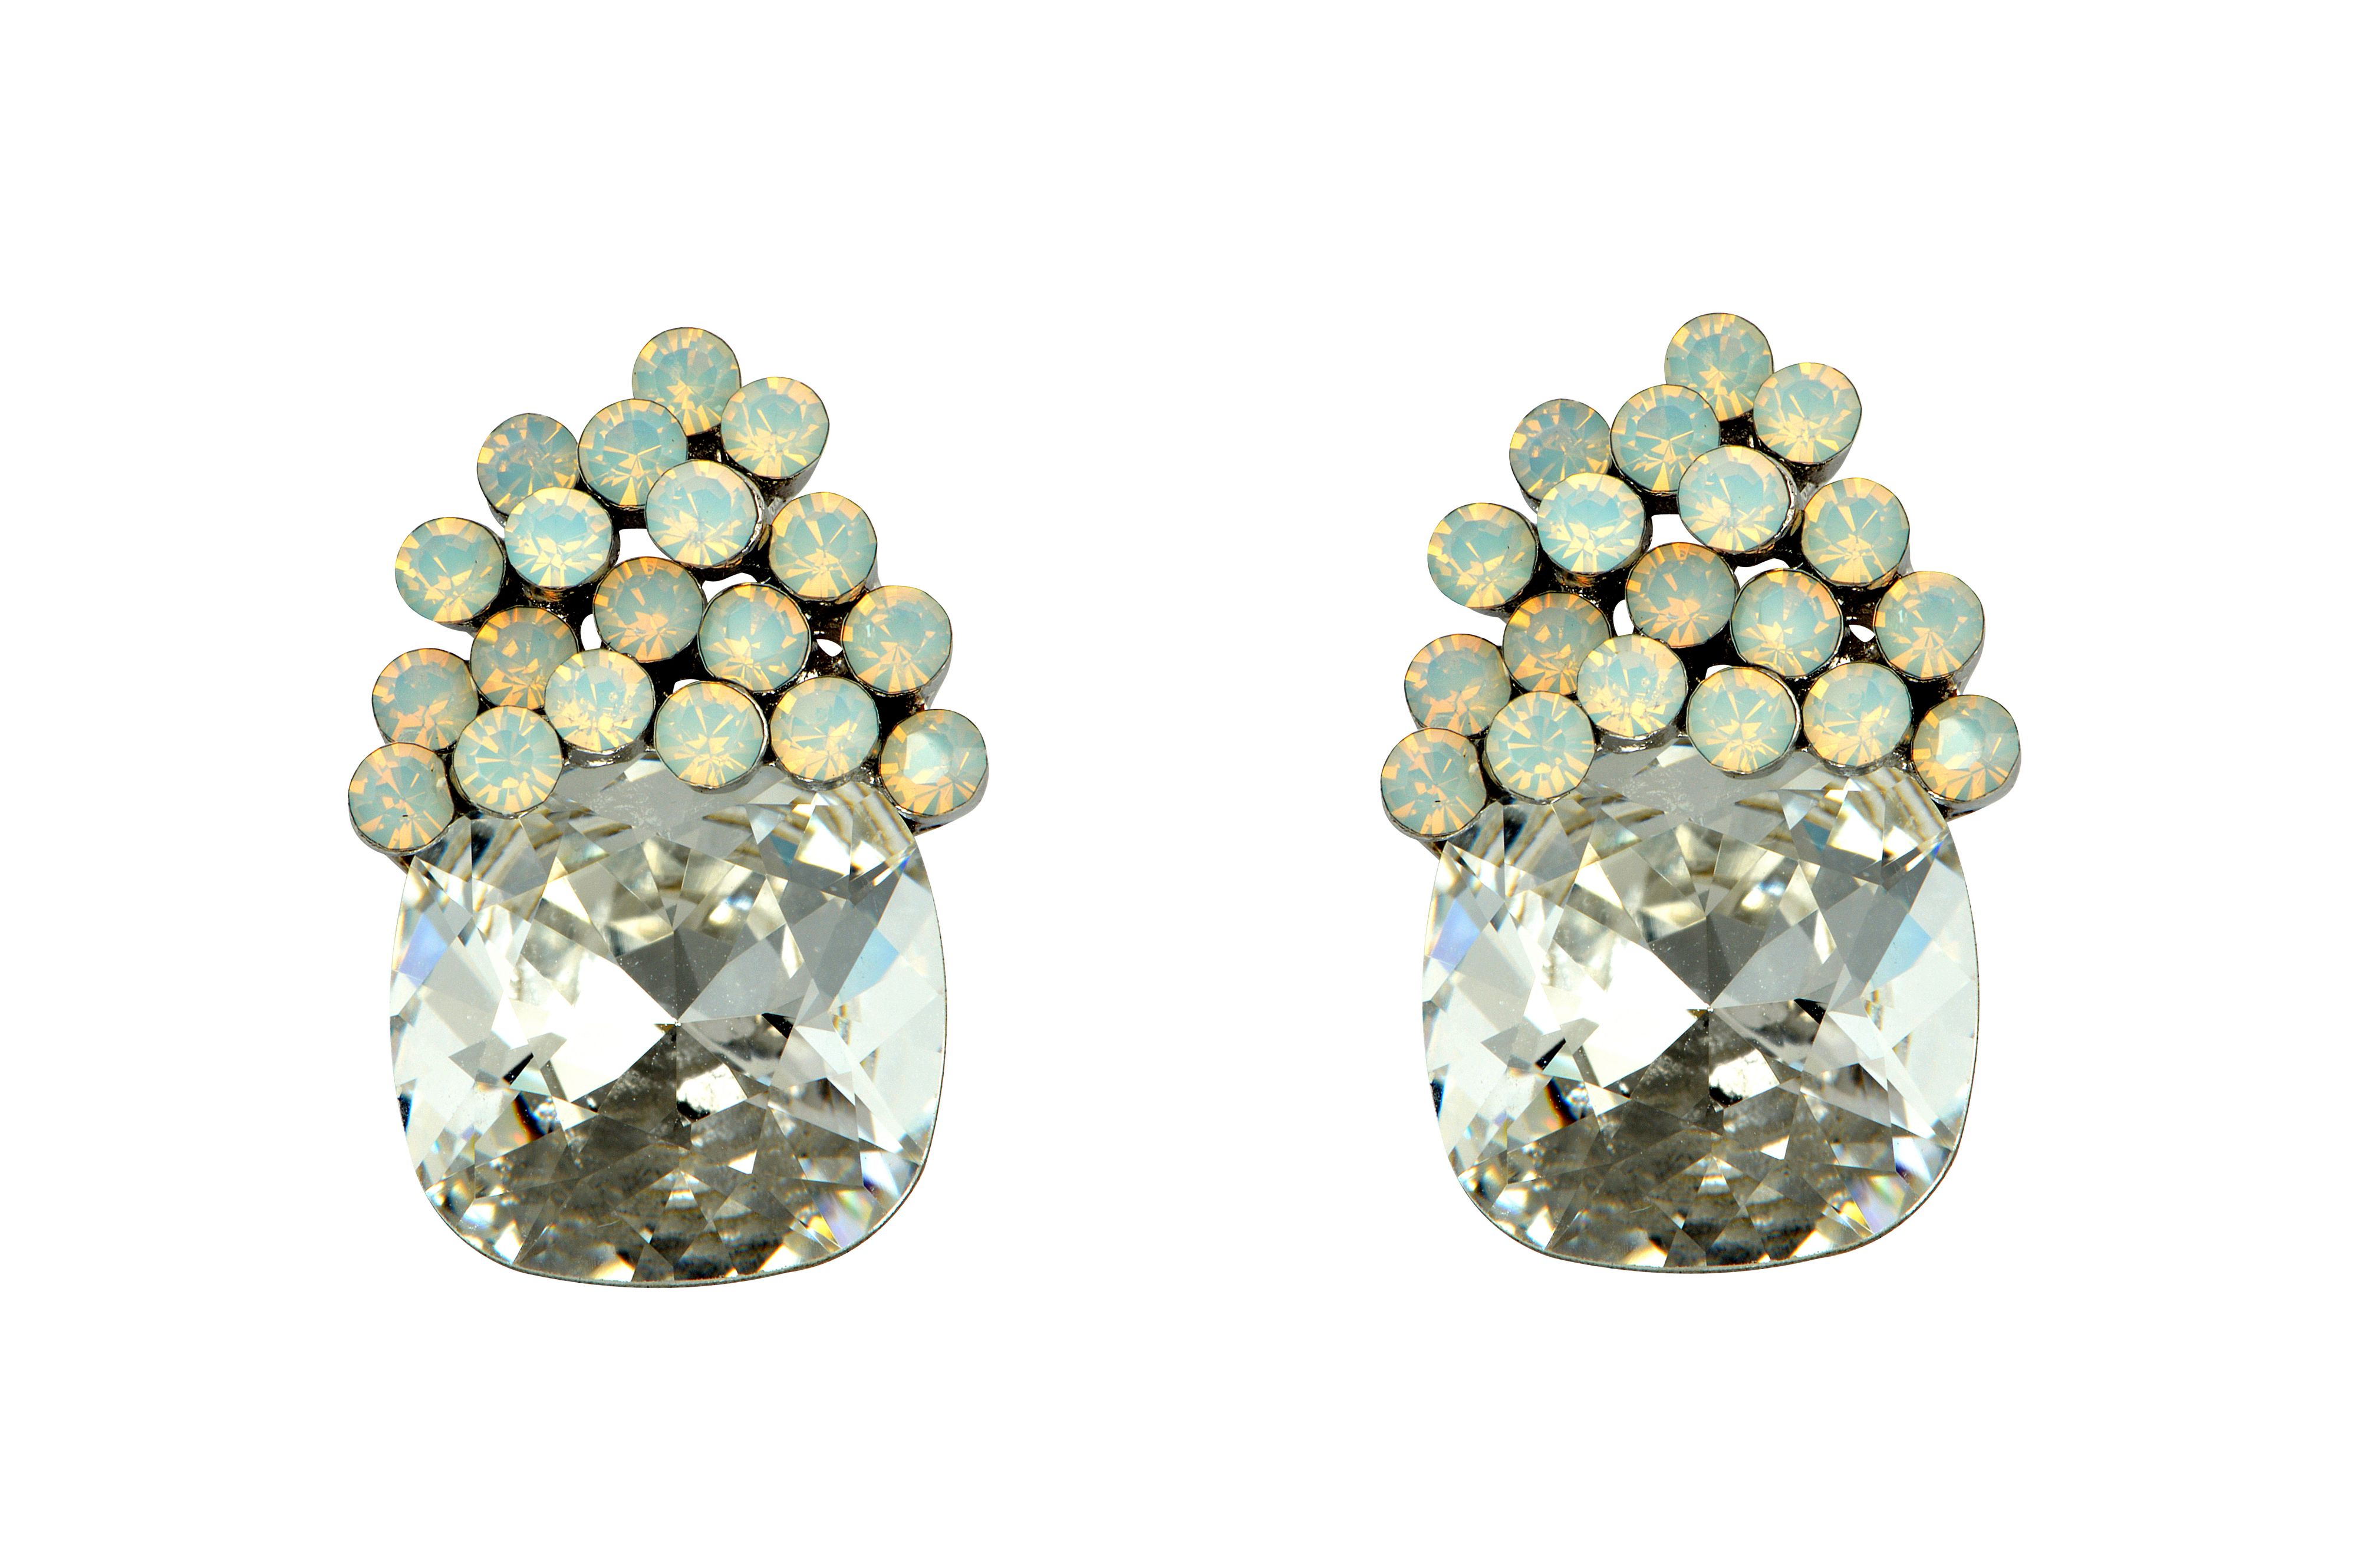 Generics opal stud earrings